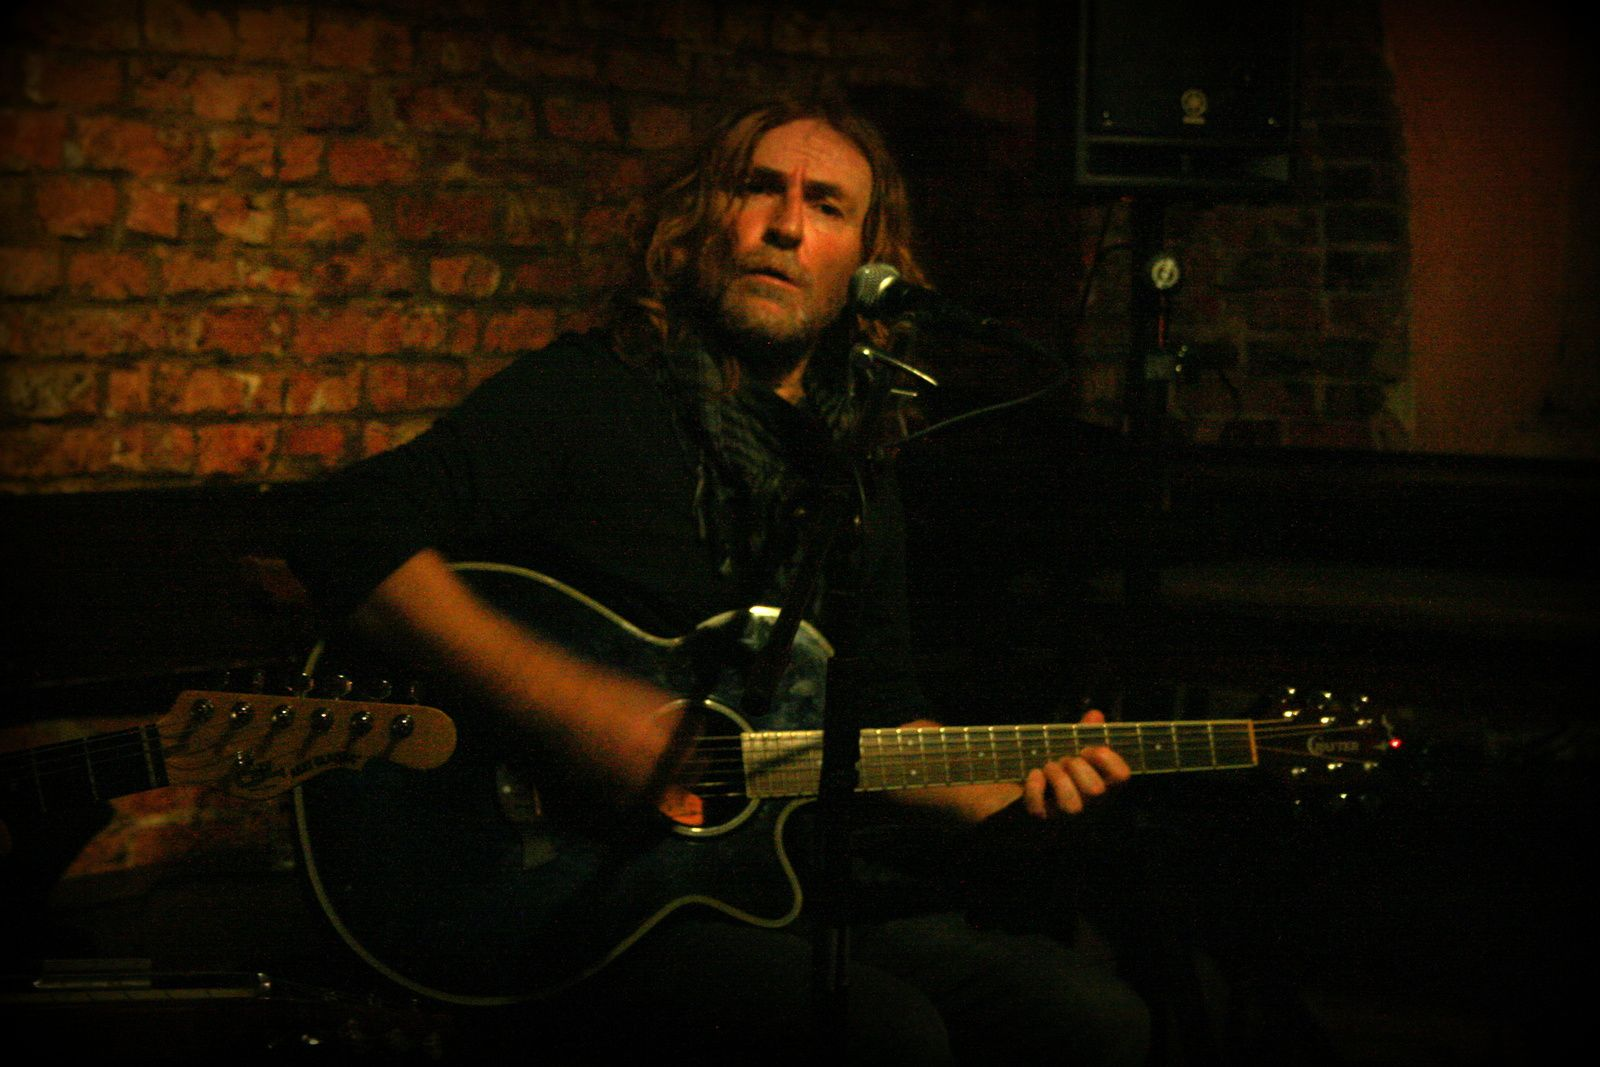 Vincent McCallum (UK) (+ Guest : Tom Beardslee ) @ La porte noire - 24/09/2015